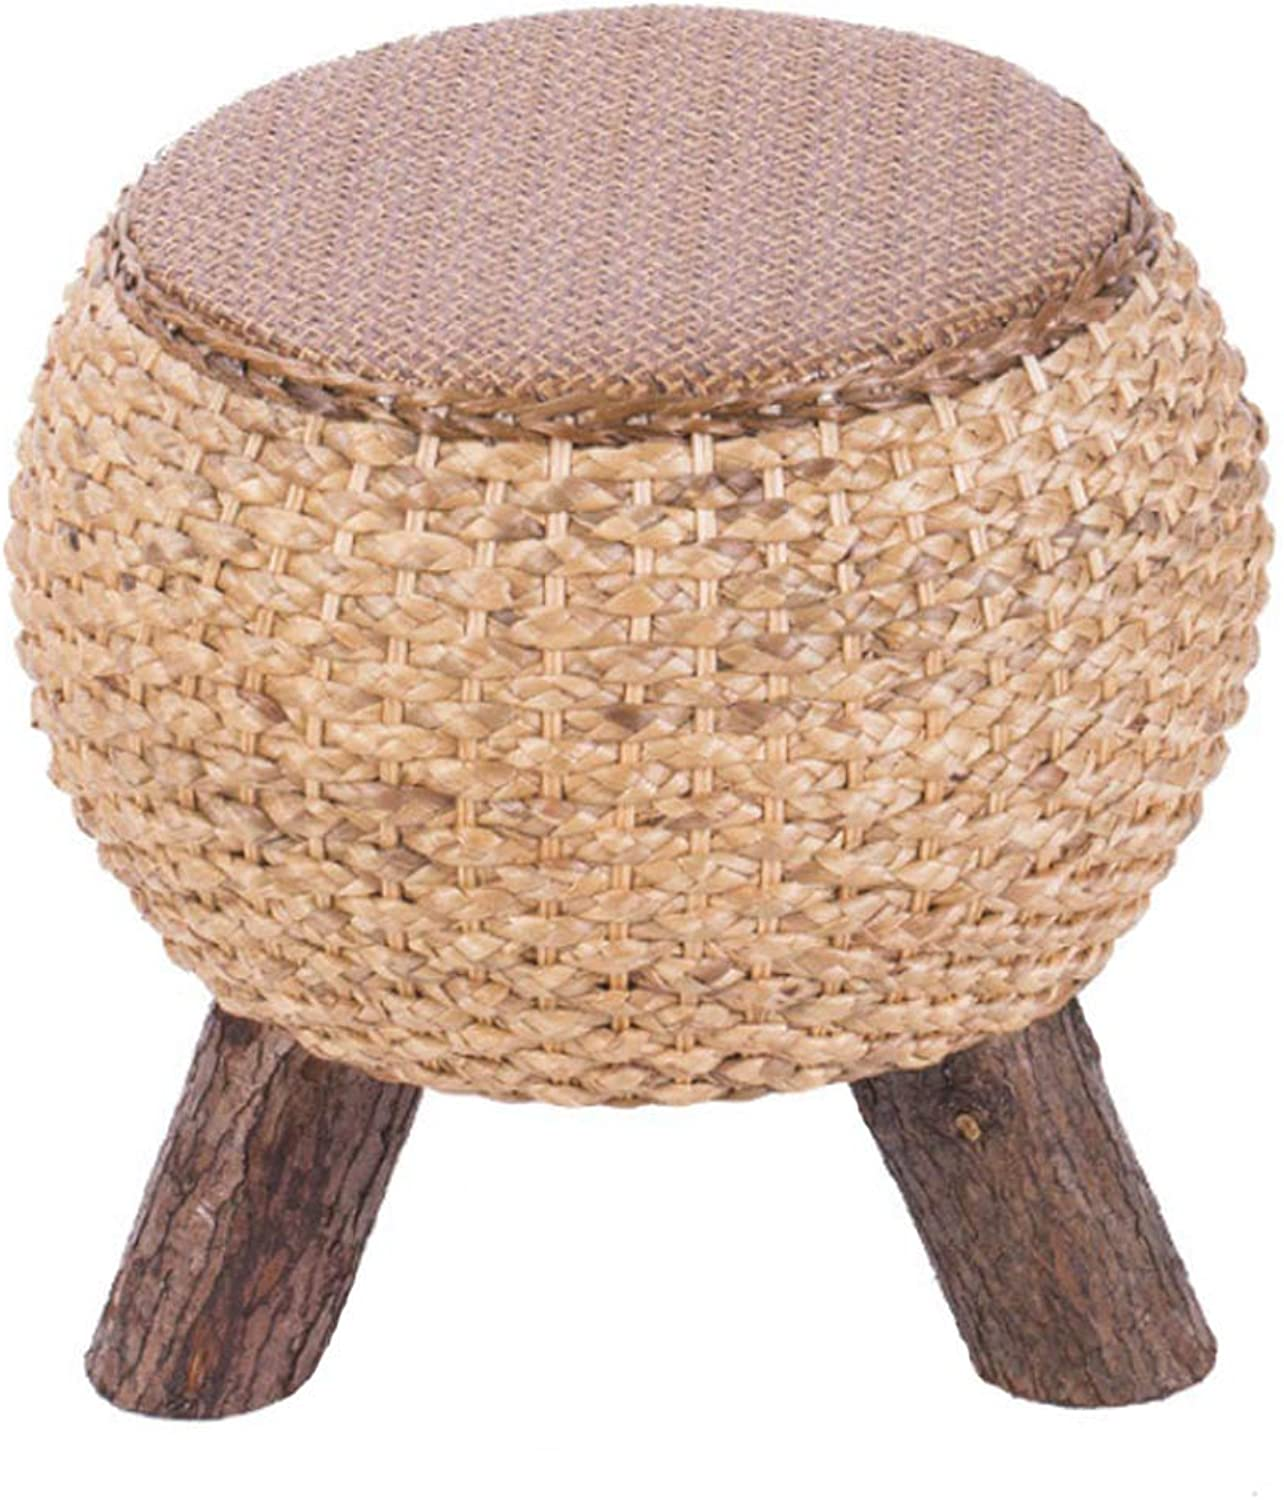 Round Seat Stool Rattan Footstool, Straw Coffee Table Stool Home Sofa Stool Fashion Ball Stool, Suitable for Living Room, Bedroom, Balcony (Dark Brown)